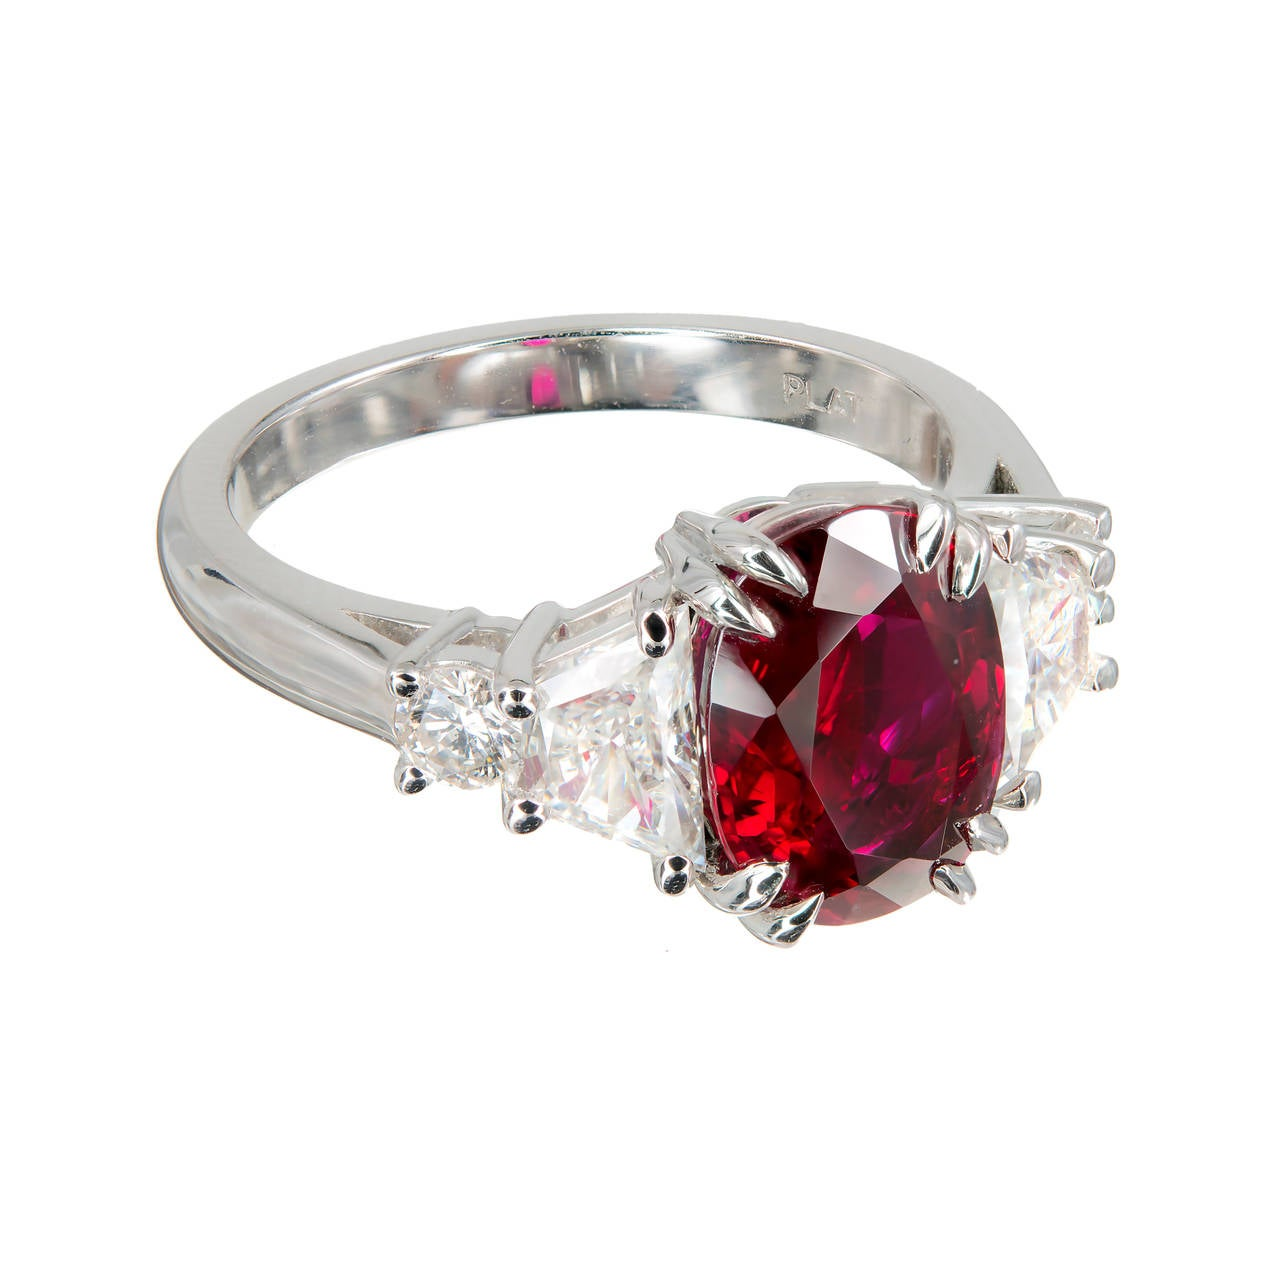 Peter Suchy 296 Carat Red Oval Ruby Diamond Platinum Engagement Ring 3